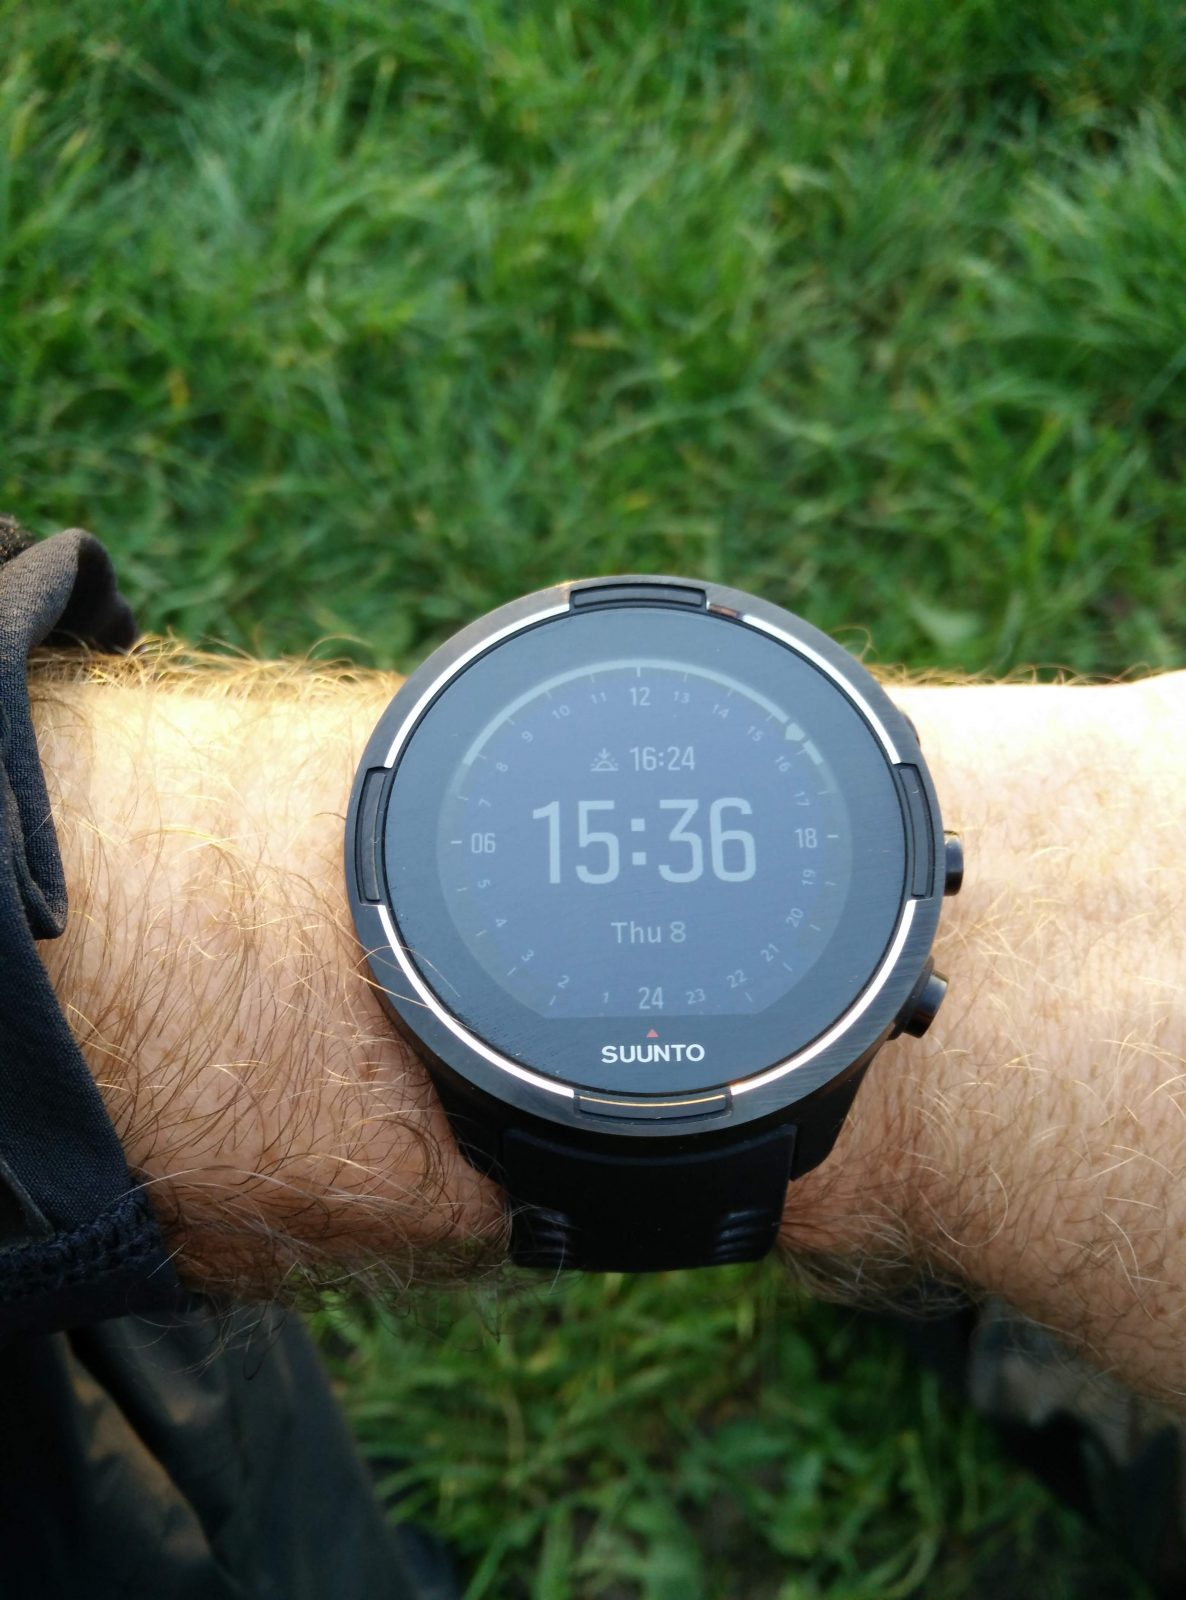 a34c54ff74433d Suunto 9 Baro Multisport GPS Watch Review - Best Hiking